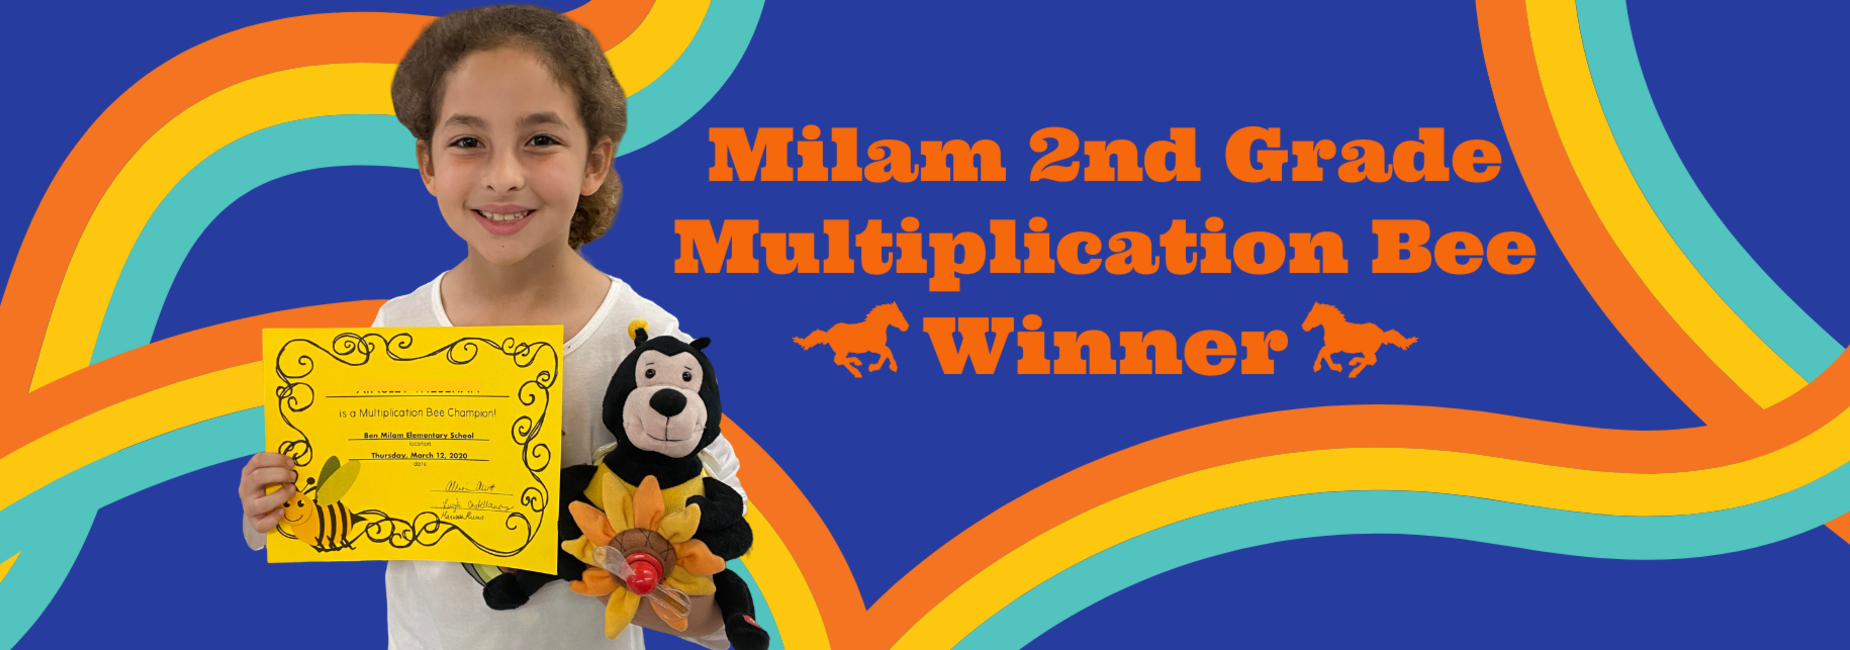 Milam 2nd Grade Multiplication Bee Winner